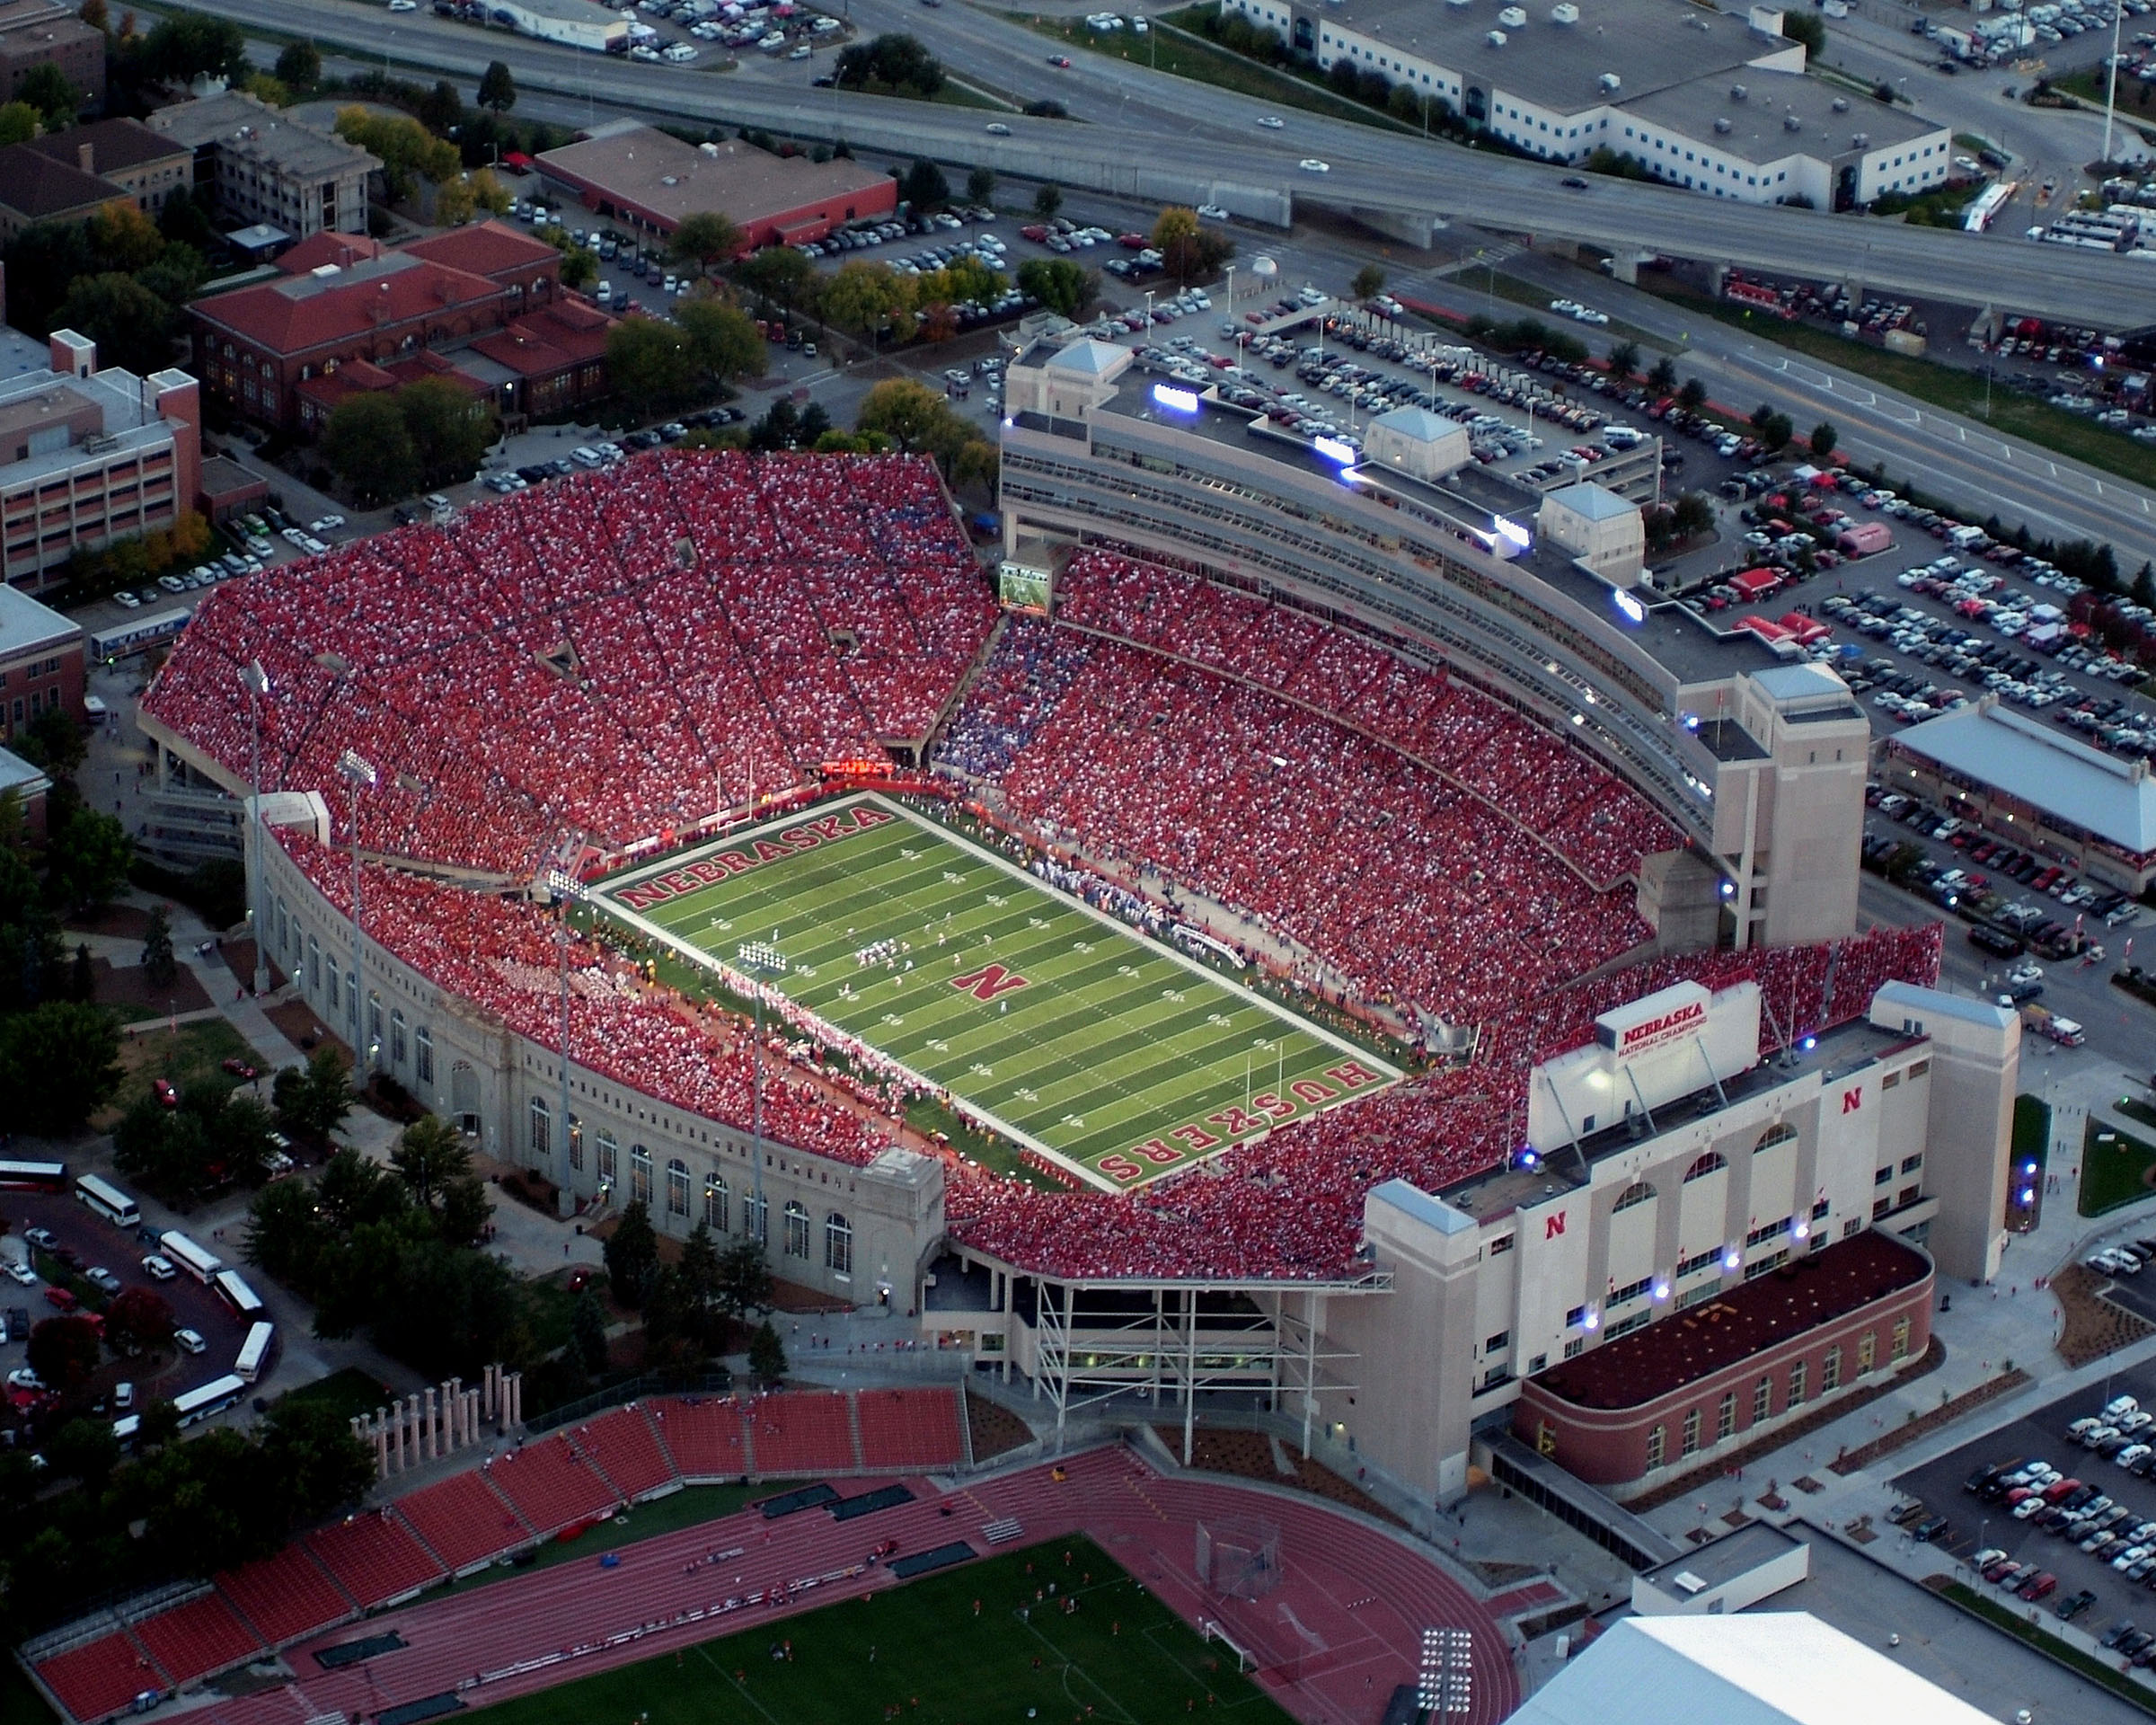 University fo Nebraska Lincoln - Memorial Stadium